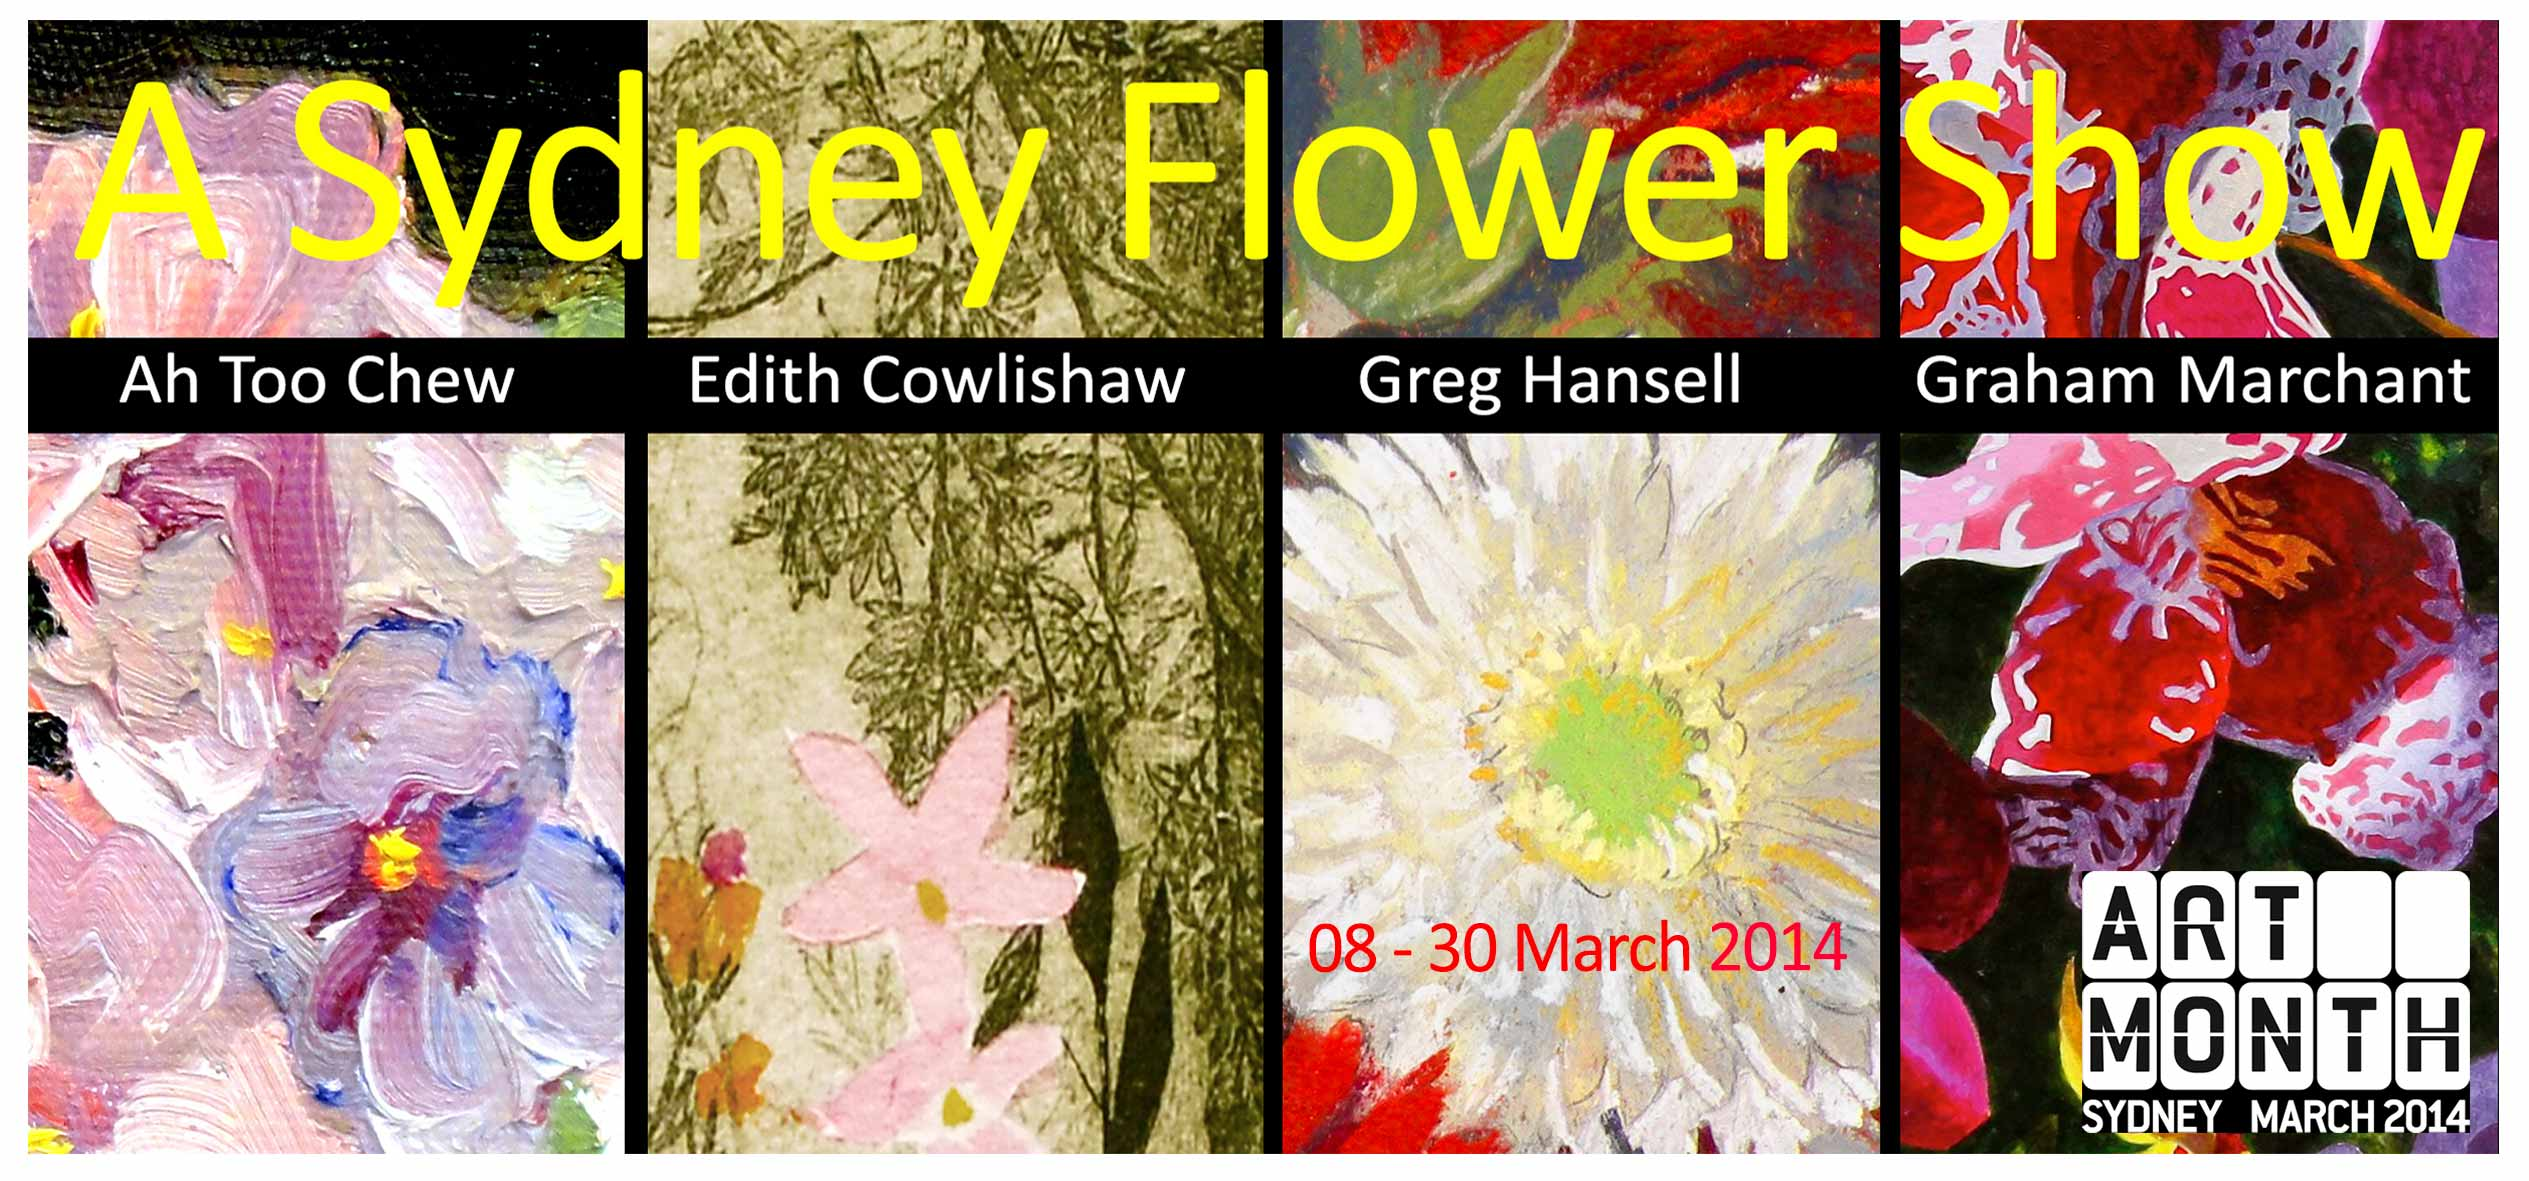 A Sydney Flower Show - Works in the flamboyant & subtle traditions of the Chelsea Flower Show and Canberra's Floriade. ...stunning blooms for the soul..... Artsite Gallery 08 - 30 March 2014